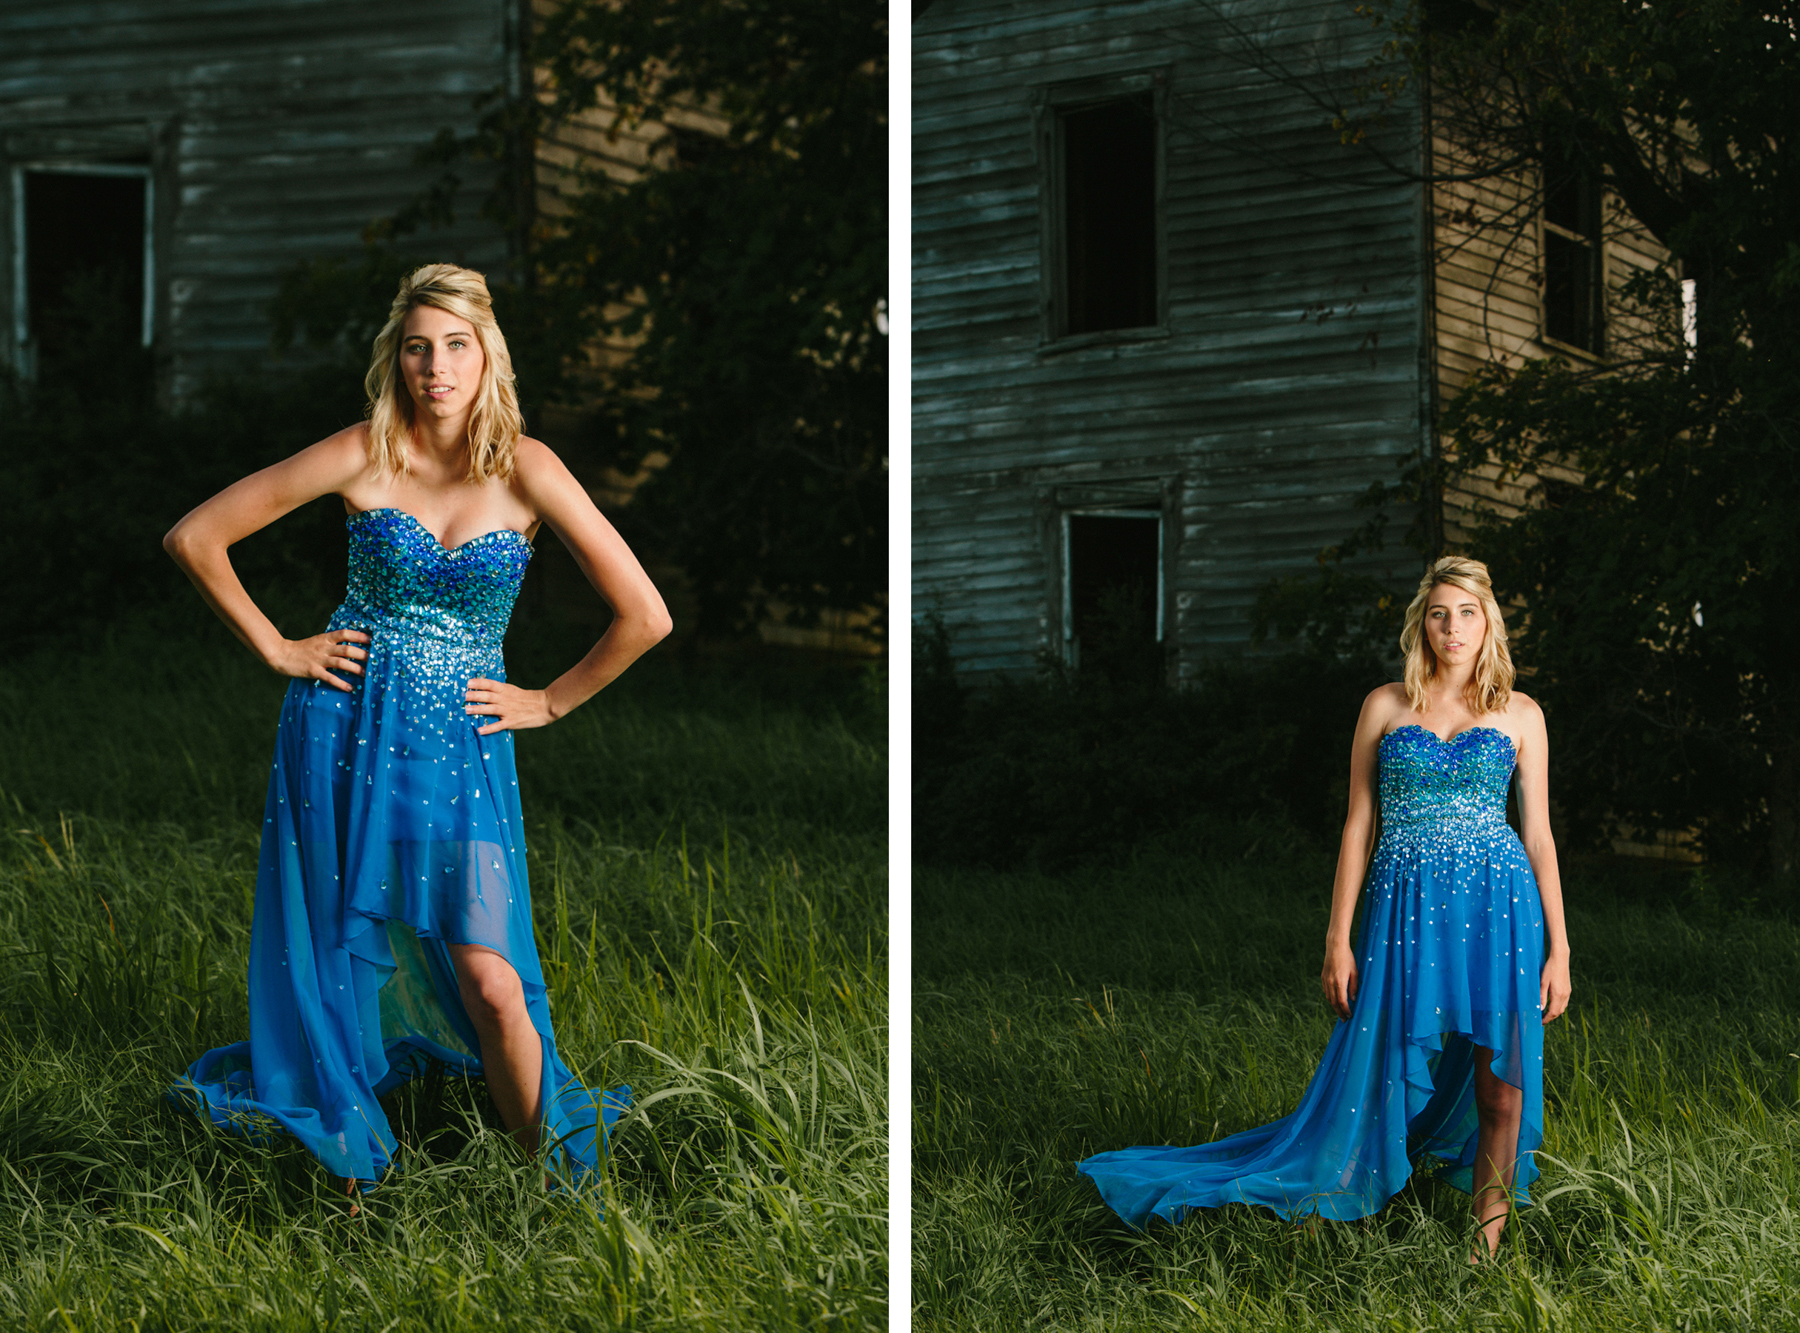 girl in dress photography modeling